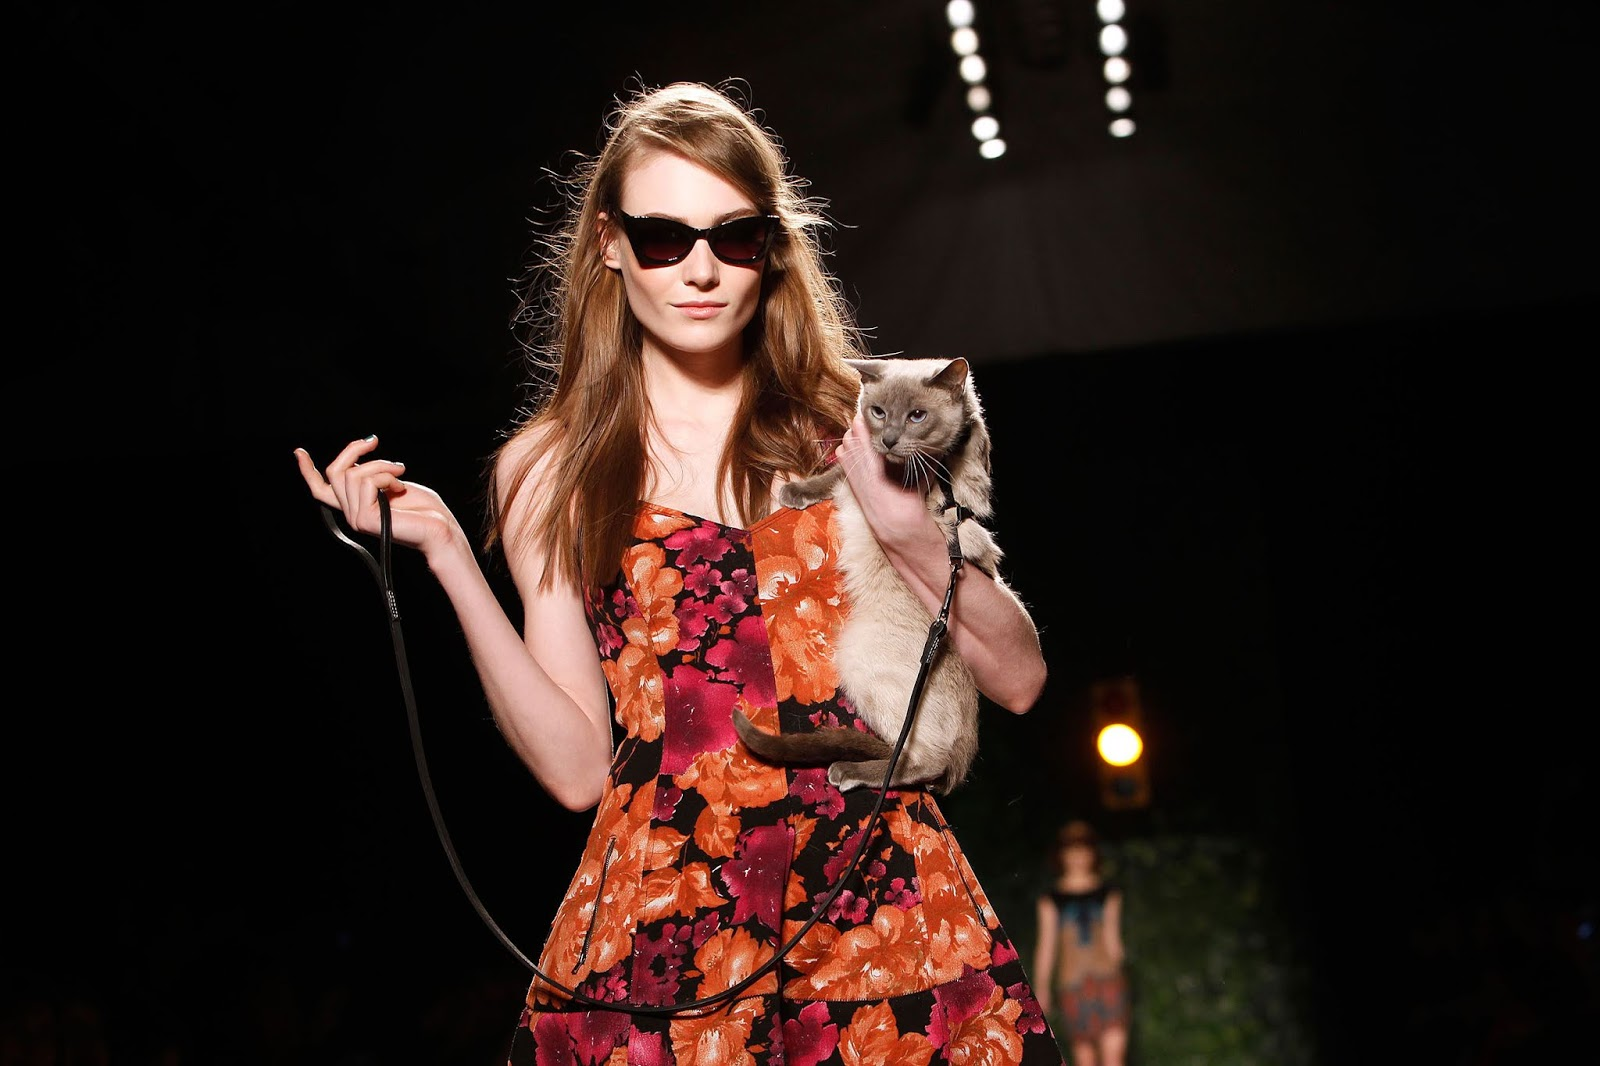 Top 20 Most Popular Runway Models of Spring 2020 | The